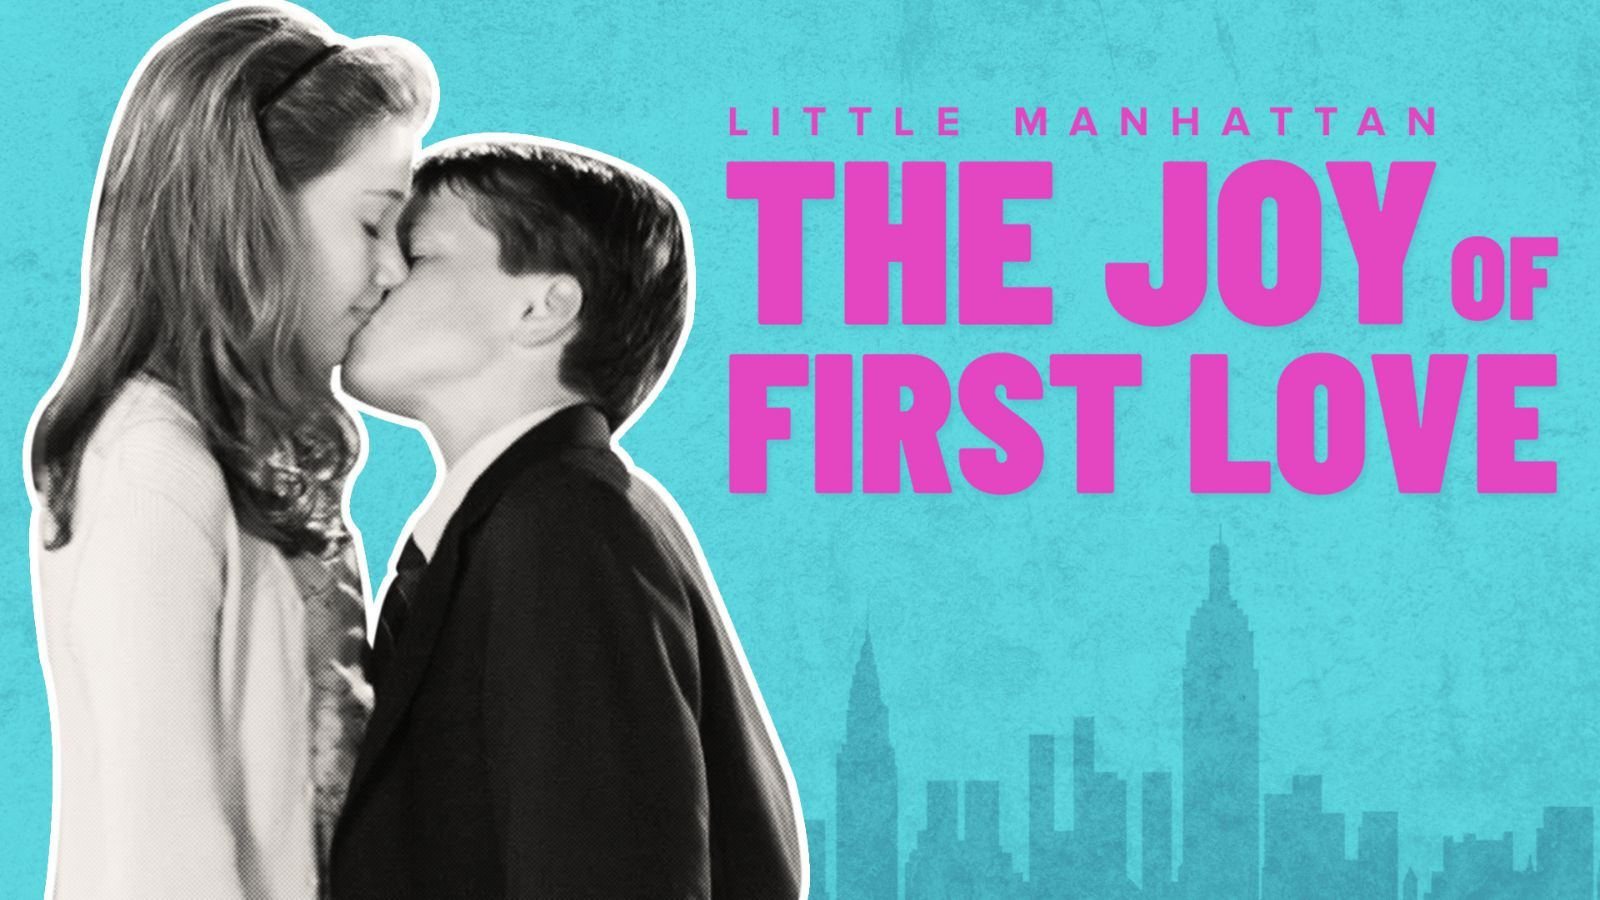 Little Manhattan - The Joy of First Love